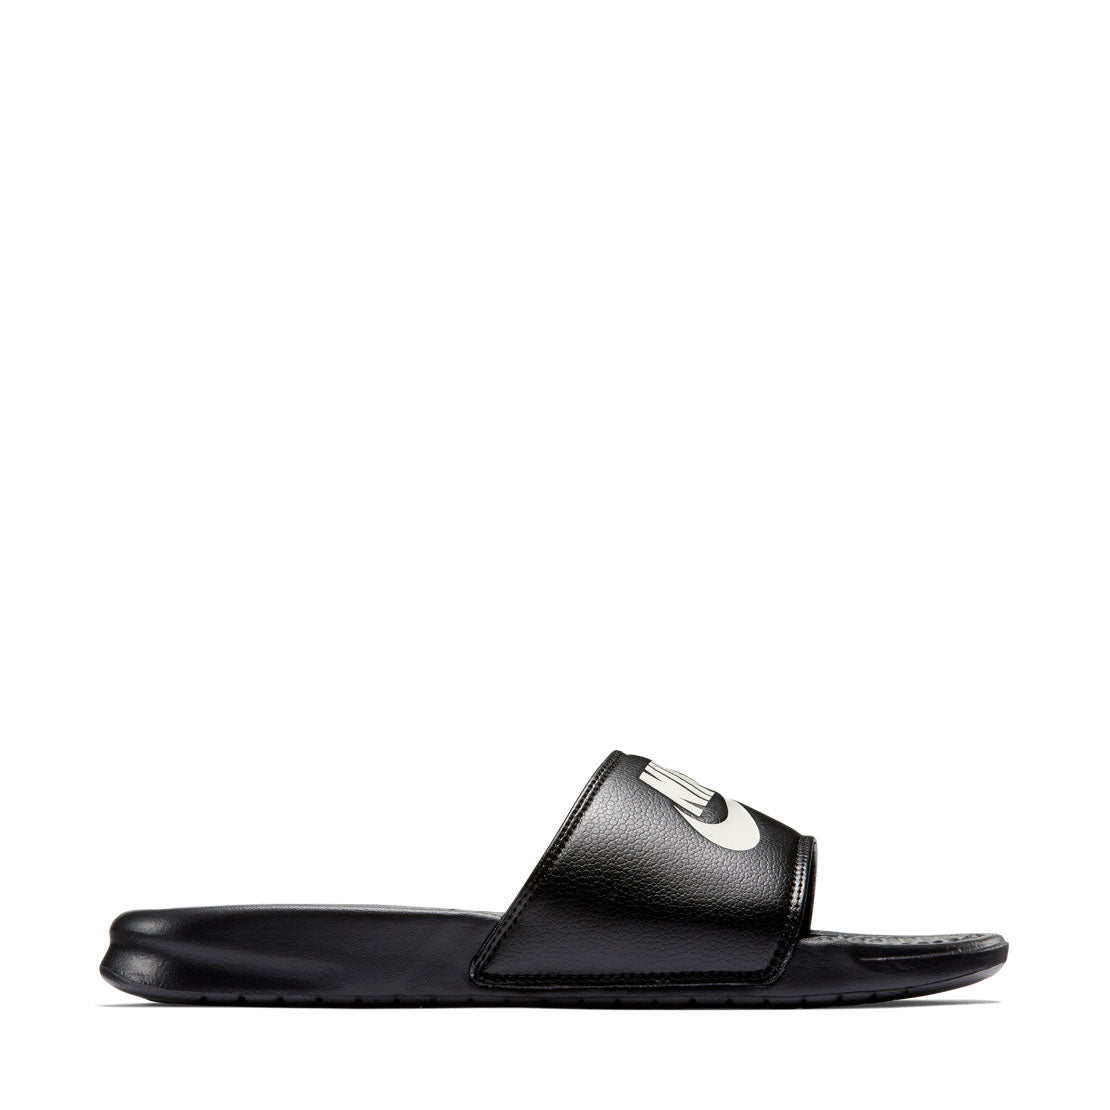 Nike Benassi JDI Sandals Black Men's